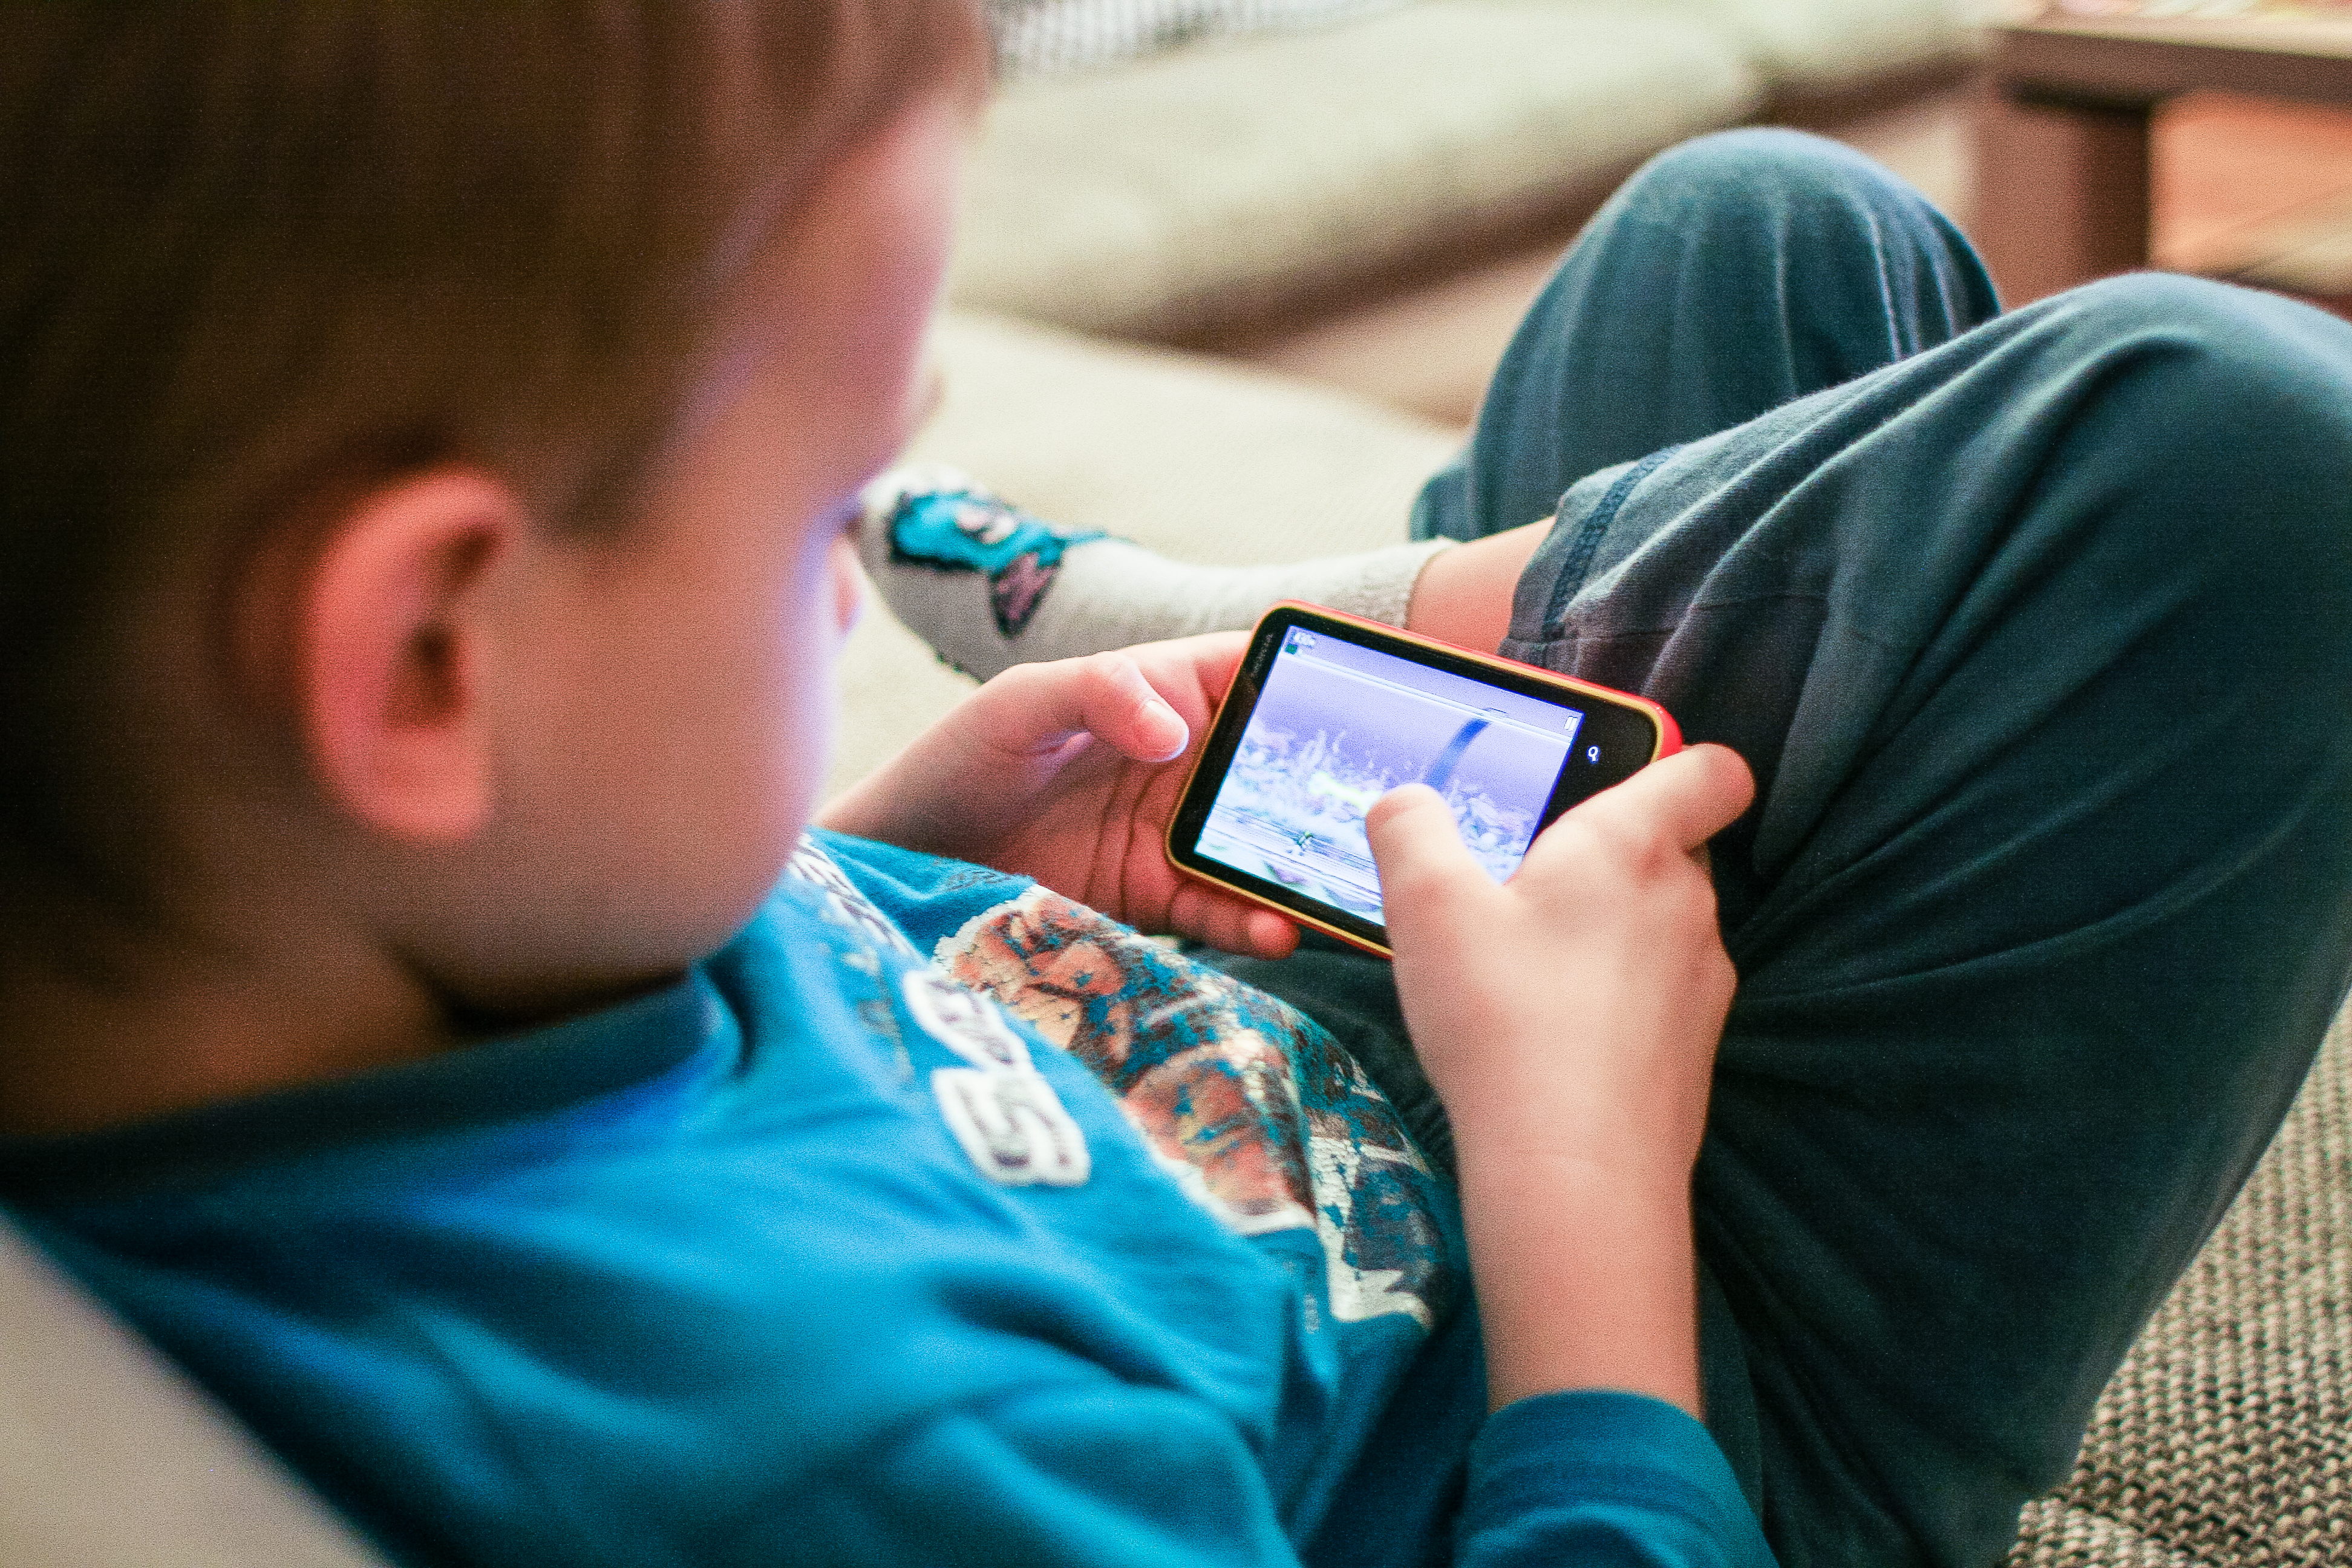 Learning Tools For Kids: Playing with Smartphone App